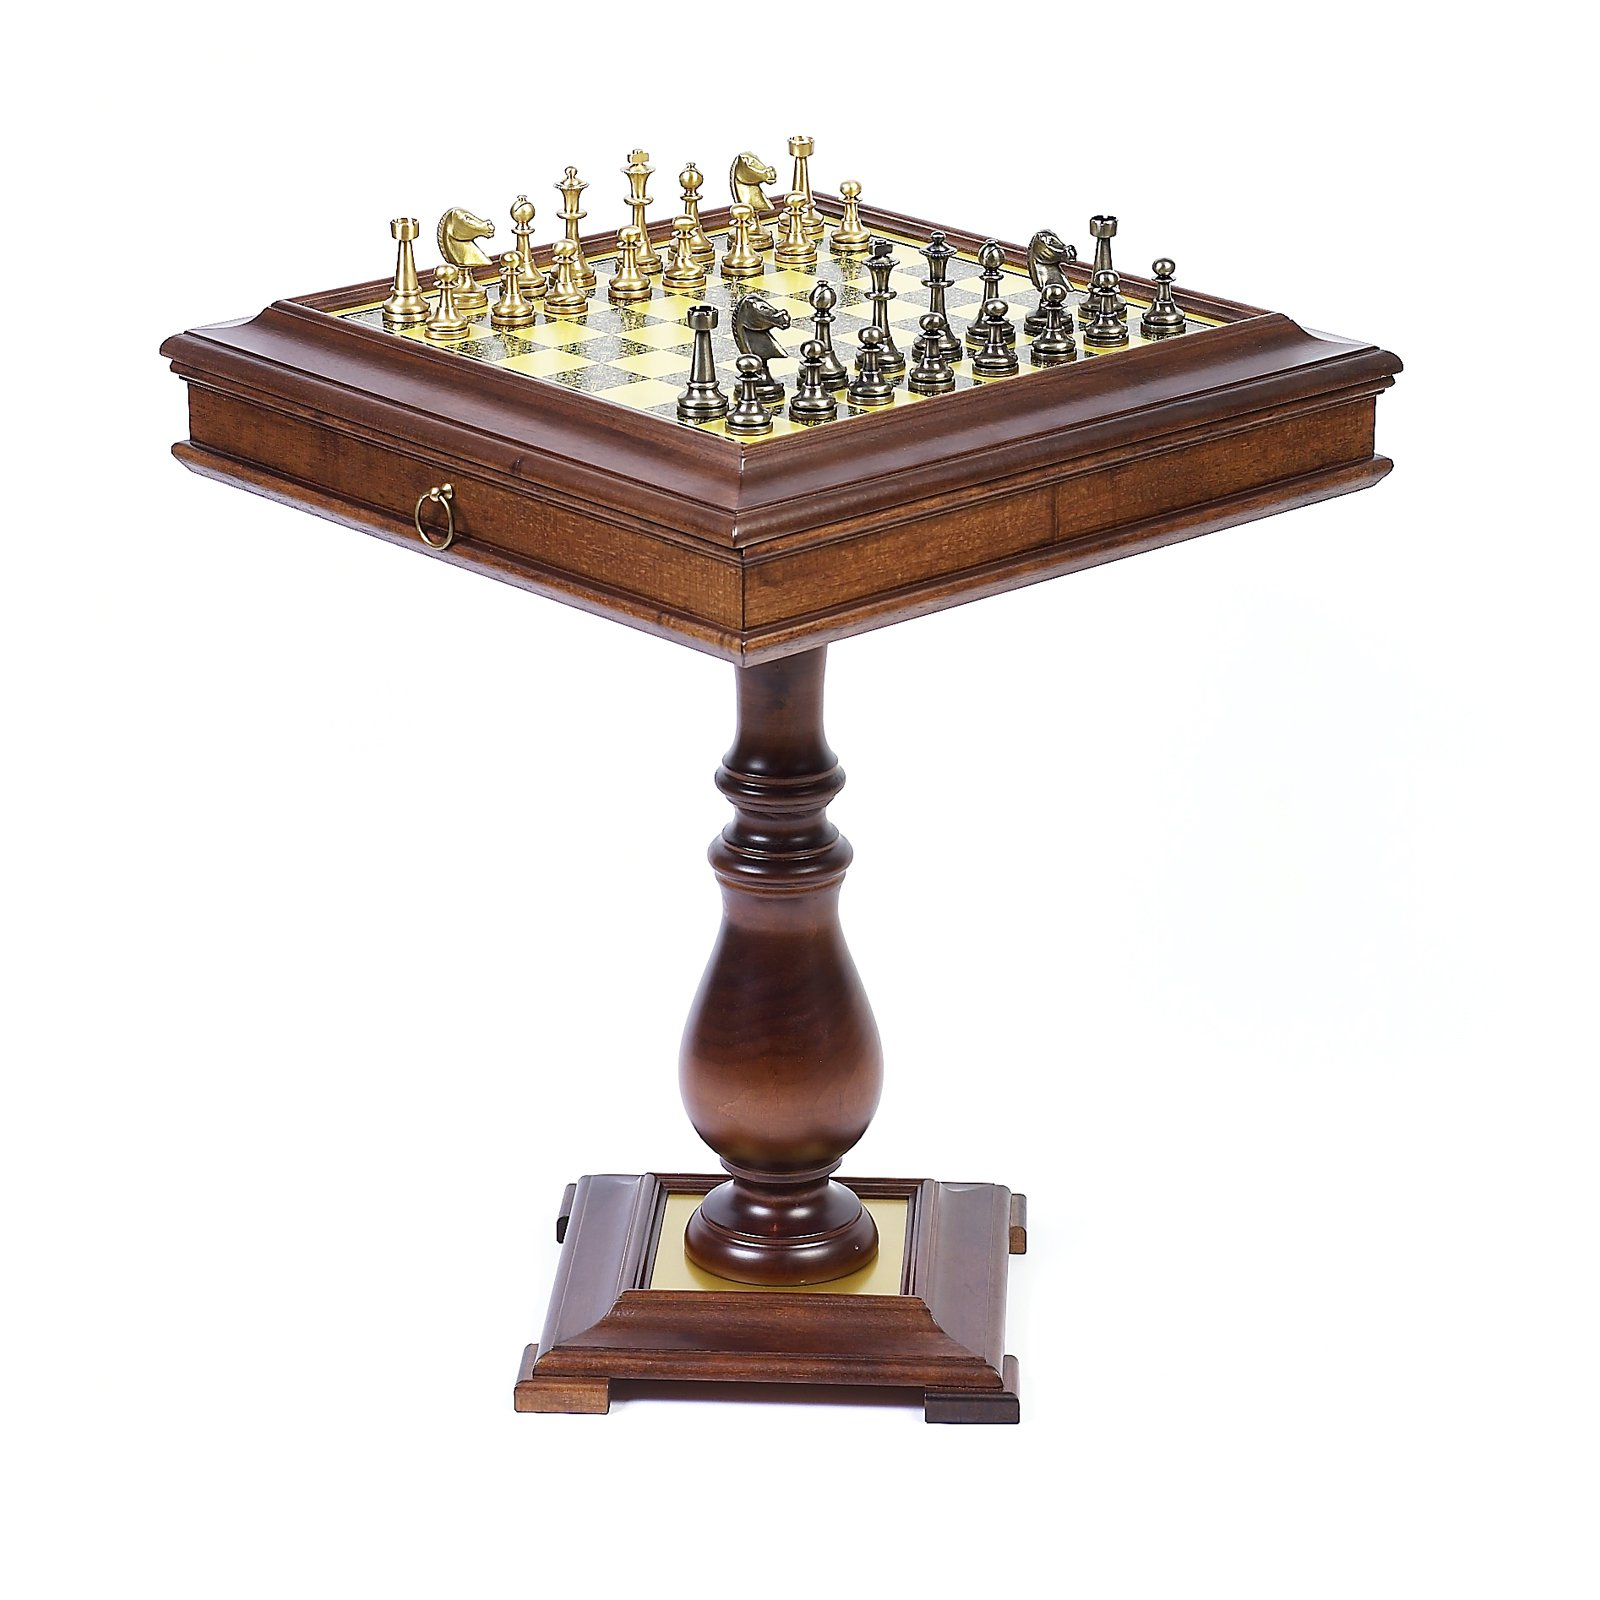 Lustrous Solid Brass/Silver Chess Set on Wormwood Table